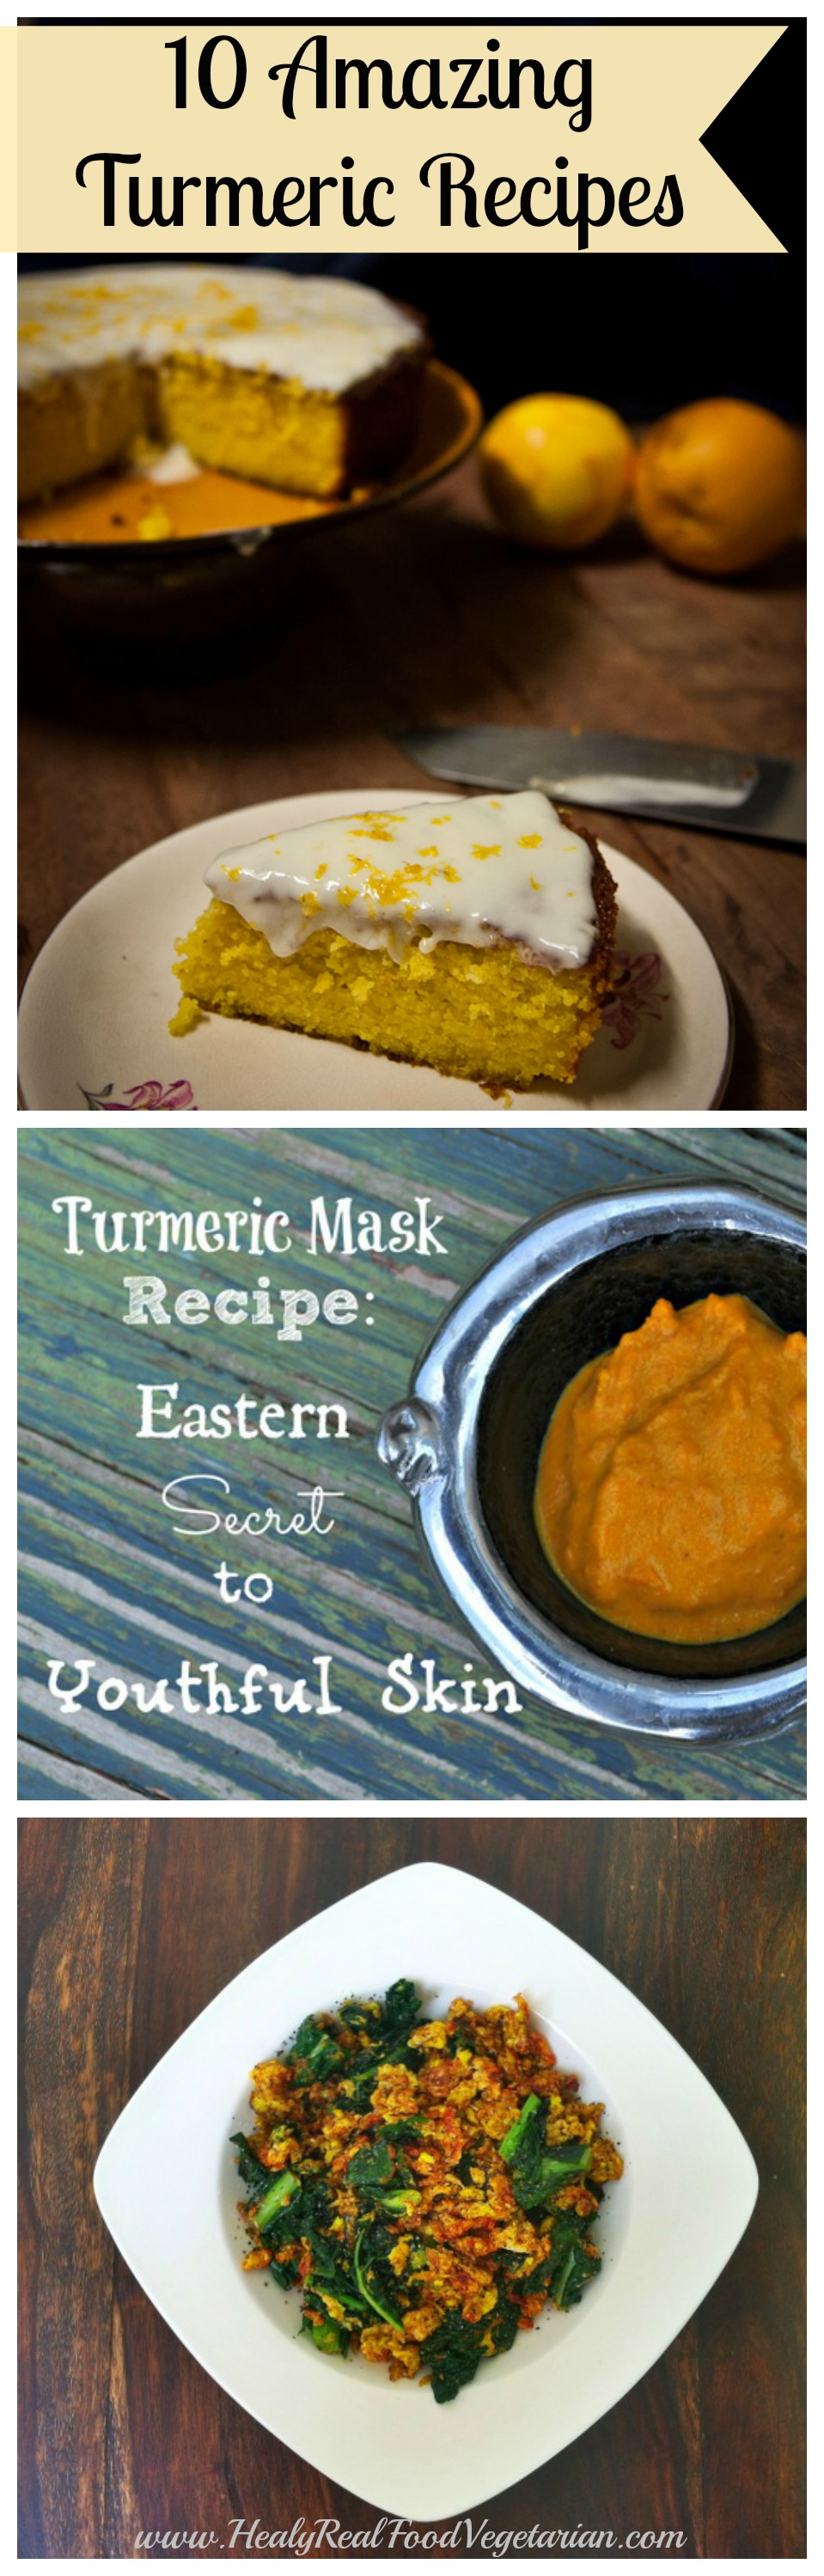 turmeric recipes pin2